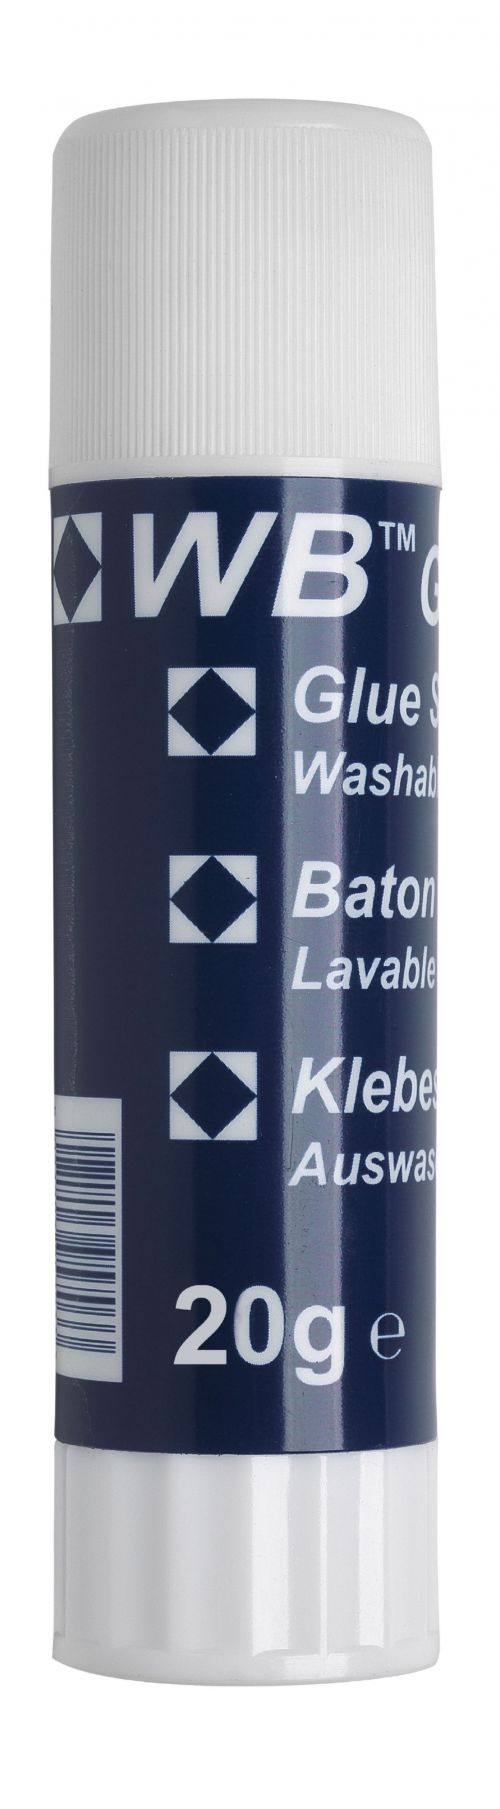 Value Glue Stick Pva 20G PK24